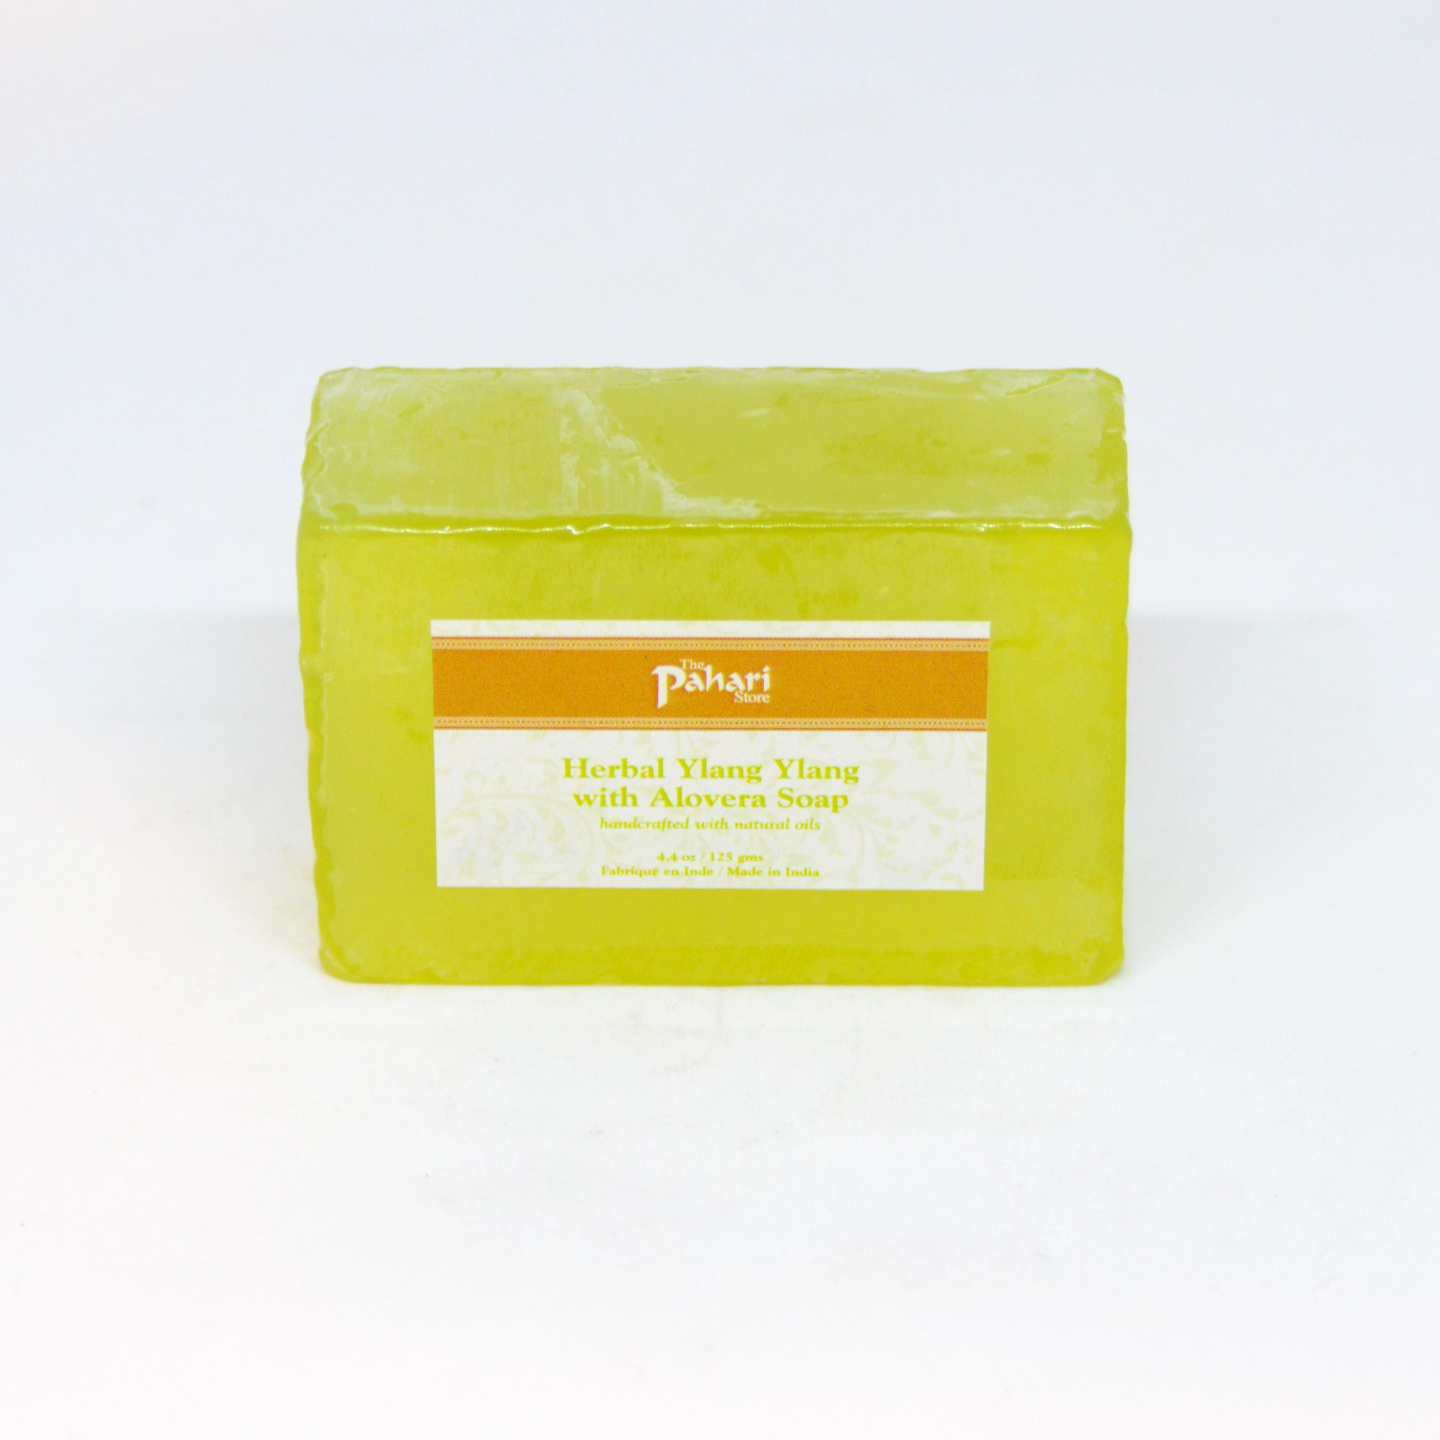 Ylang Ylang with Aloevera Herbal Soap 125g